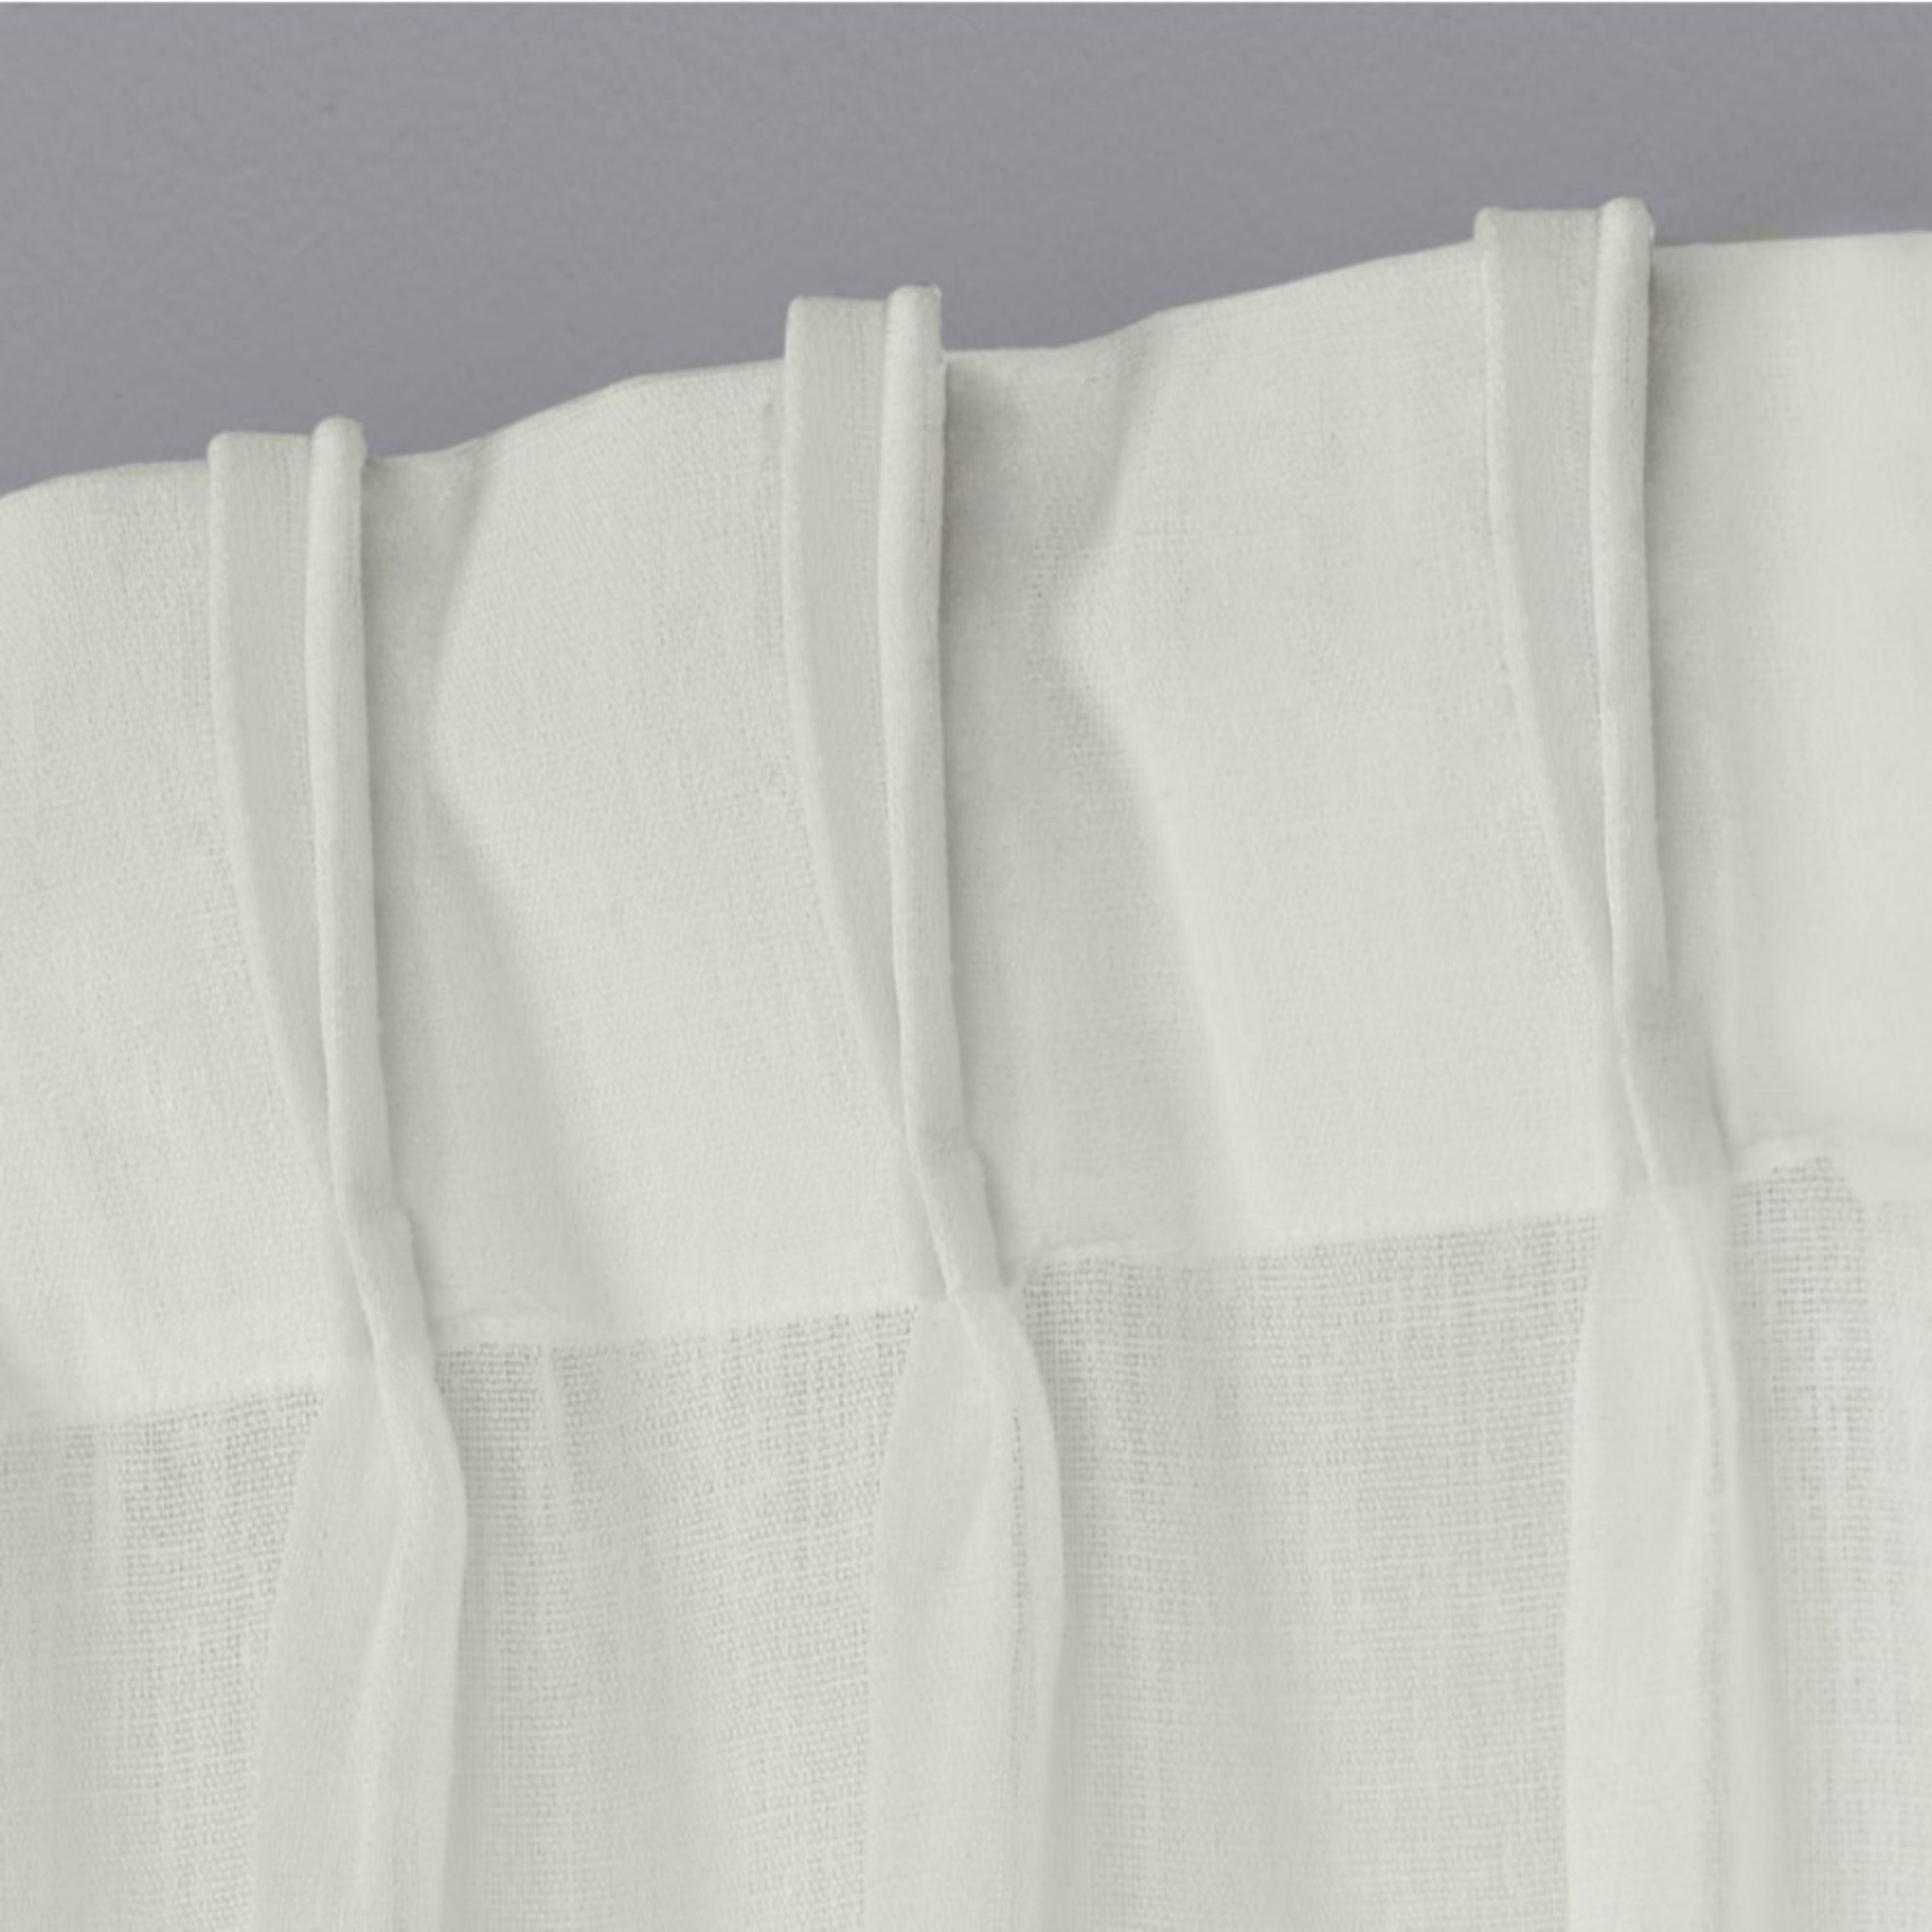 Details About Ati Home Belgian Jacquard Sheer Double Pinch Pleat Top With Double Pinch Pleat Top Curtain Panel Pairs (View 6 of 20)